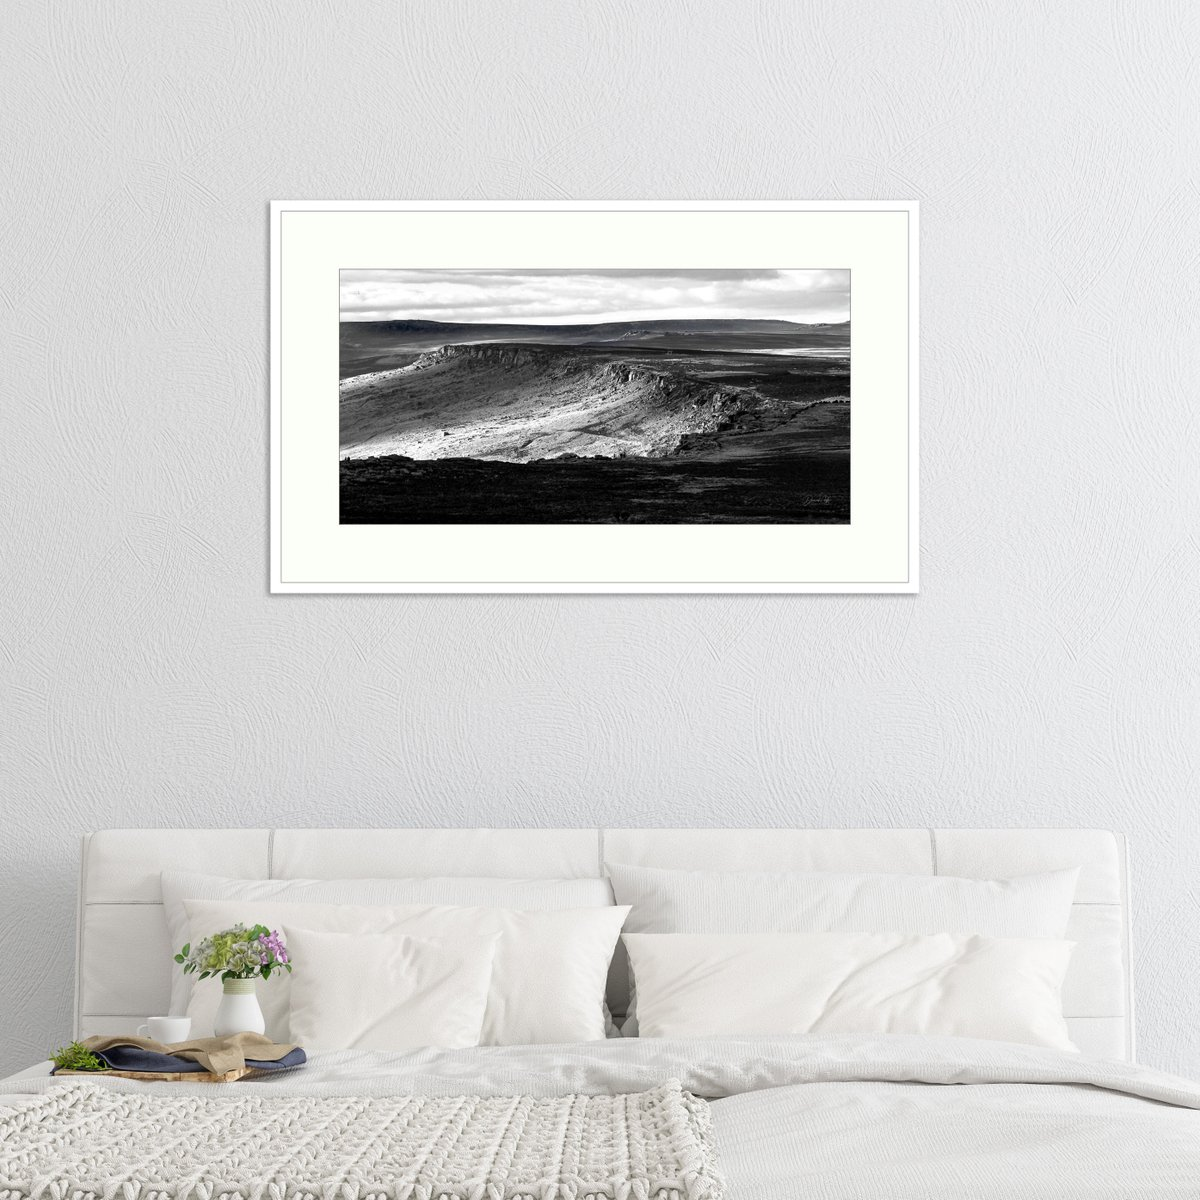 Peak District Print Stanage Edge Panoramic Black and White Landscape Photography Climbing Outdoor Sheffield Wall Art Derbyshire Framed https://p.danscape.co/2z3wn97  #Photography #handmade #print #wall art #Art #MyNewTag #gift #Outdoors #art #GalleryArtWall